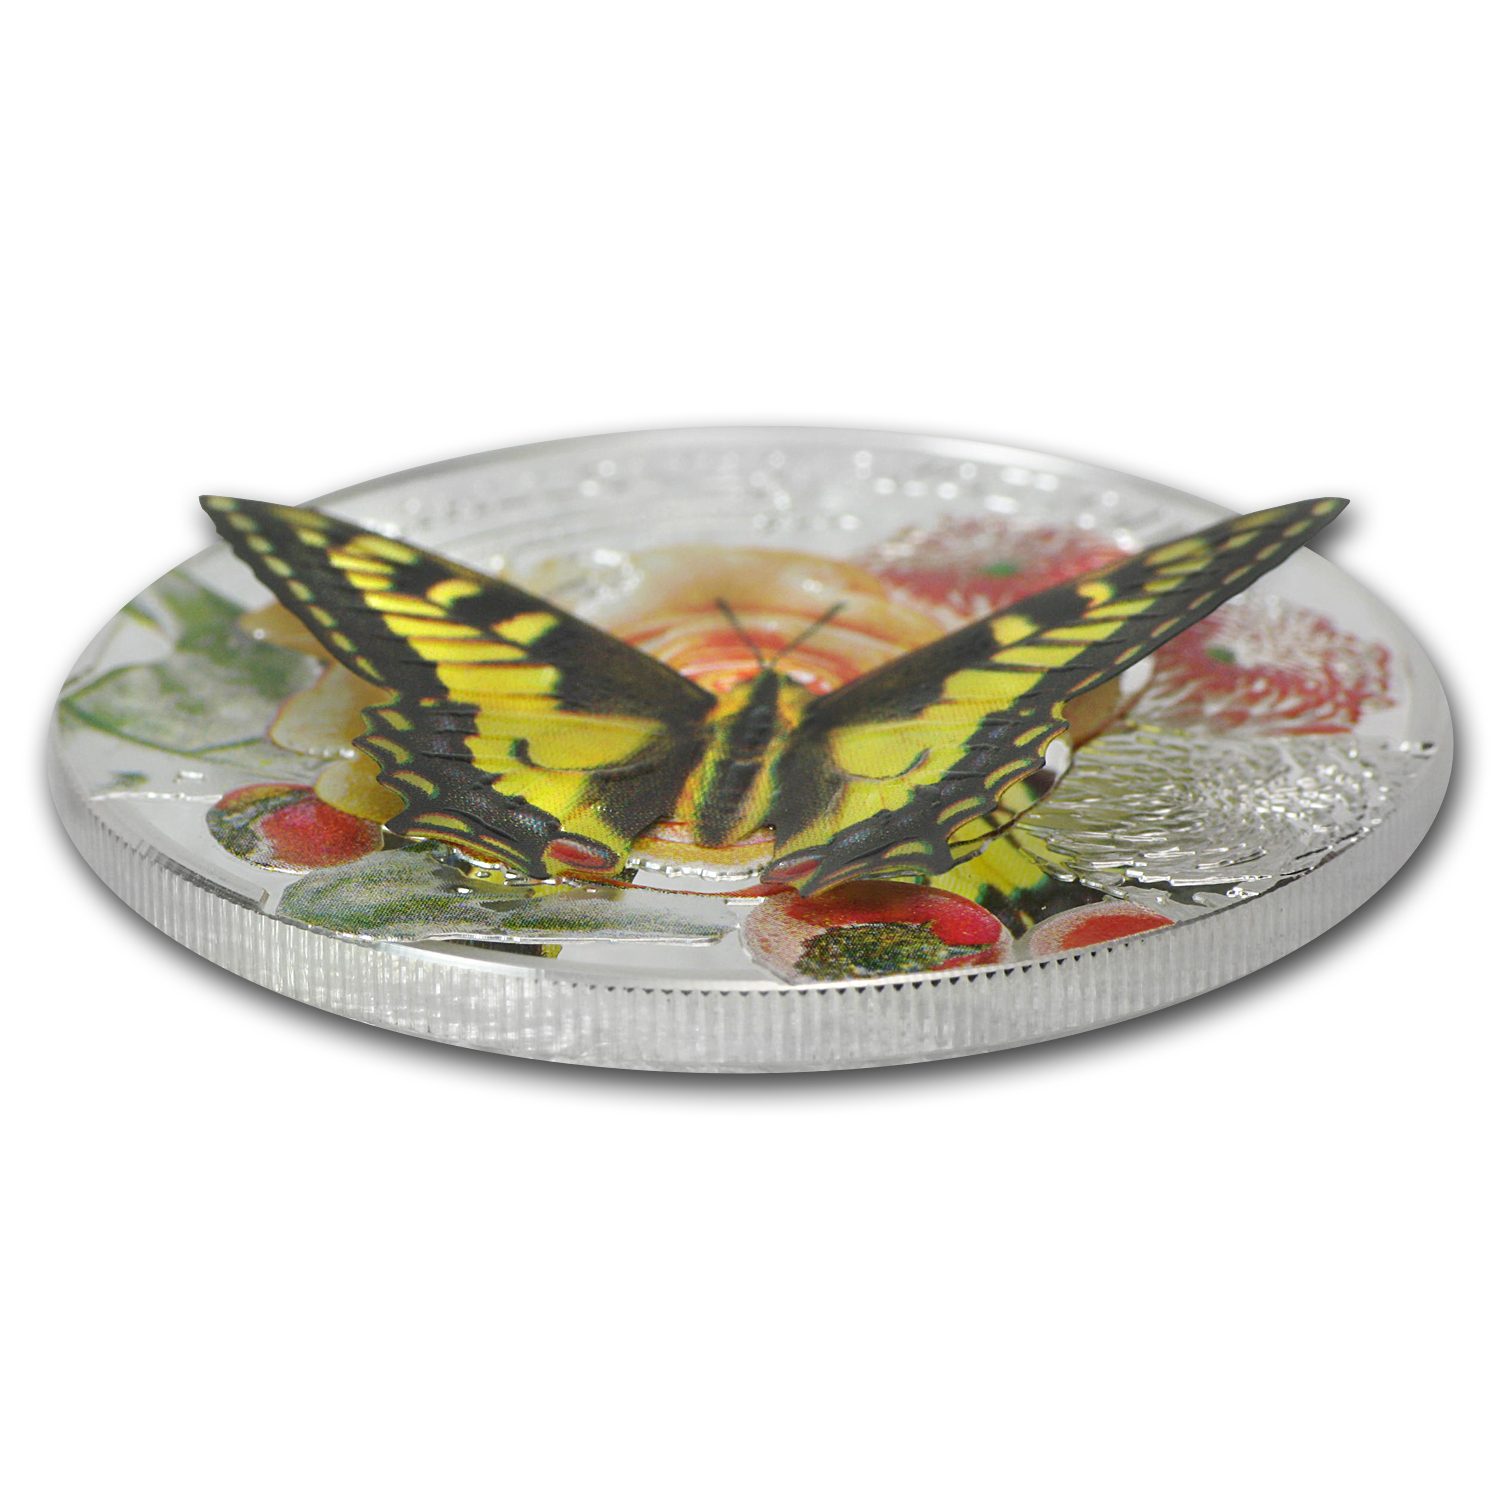 2013 Andorra Proof Silver 3D Exotic Butterflies Swallowtail